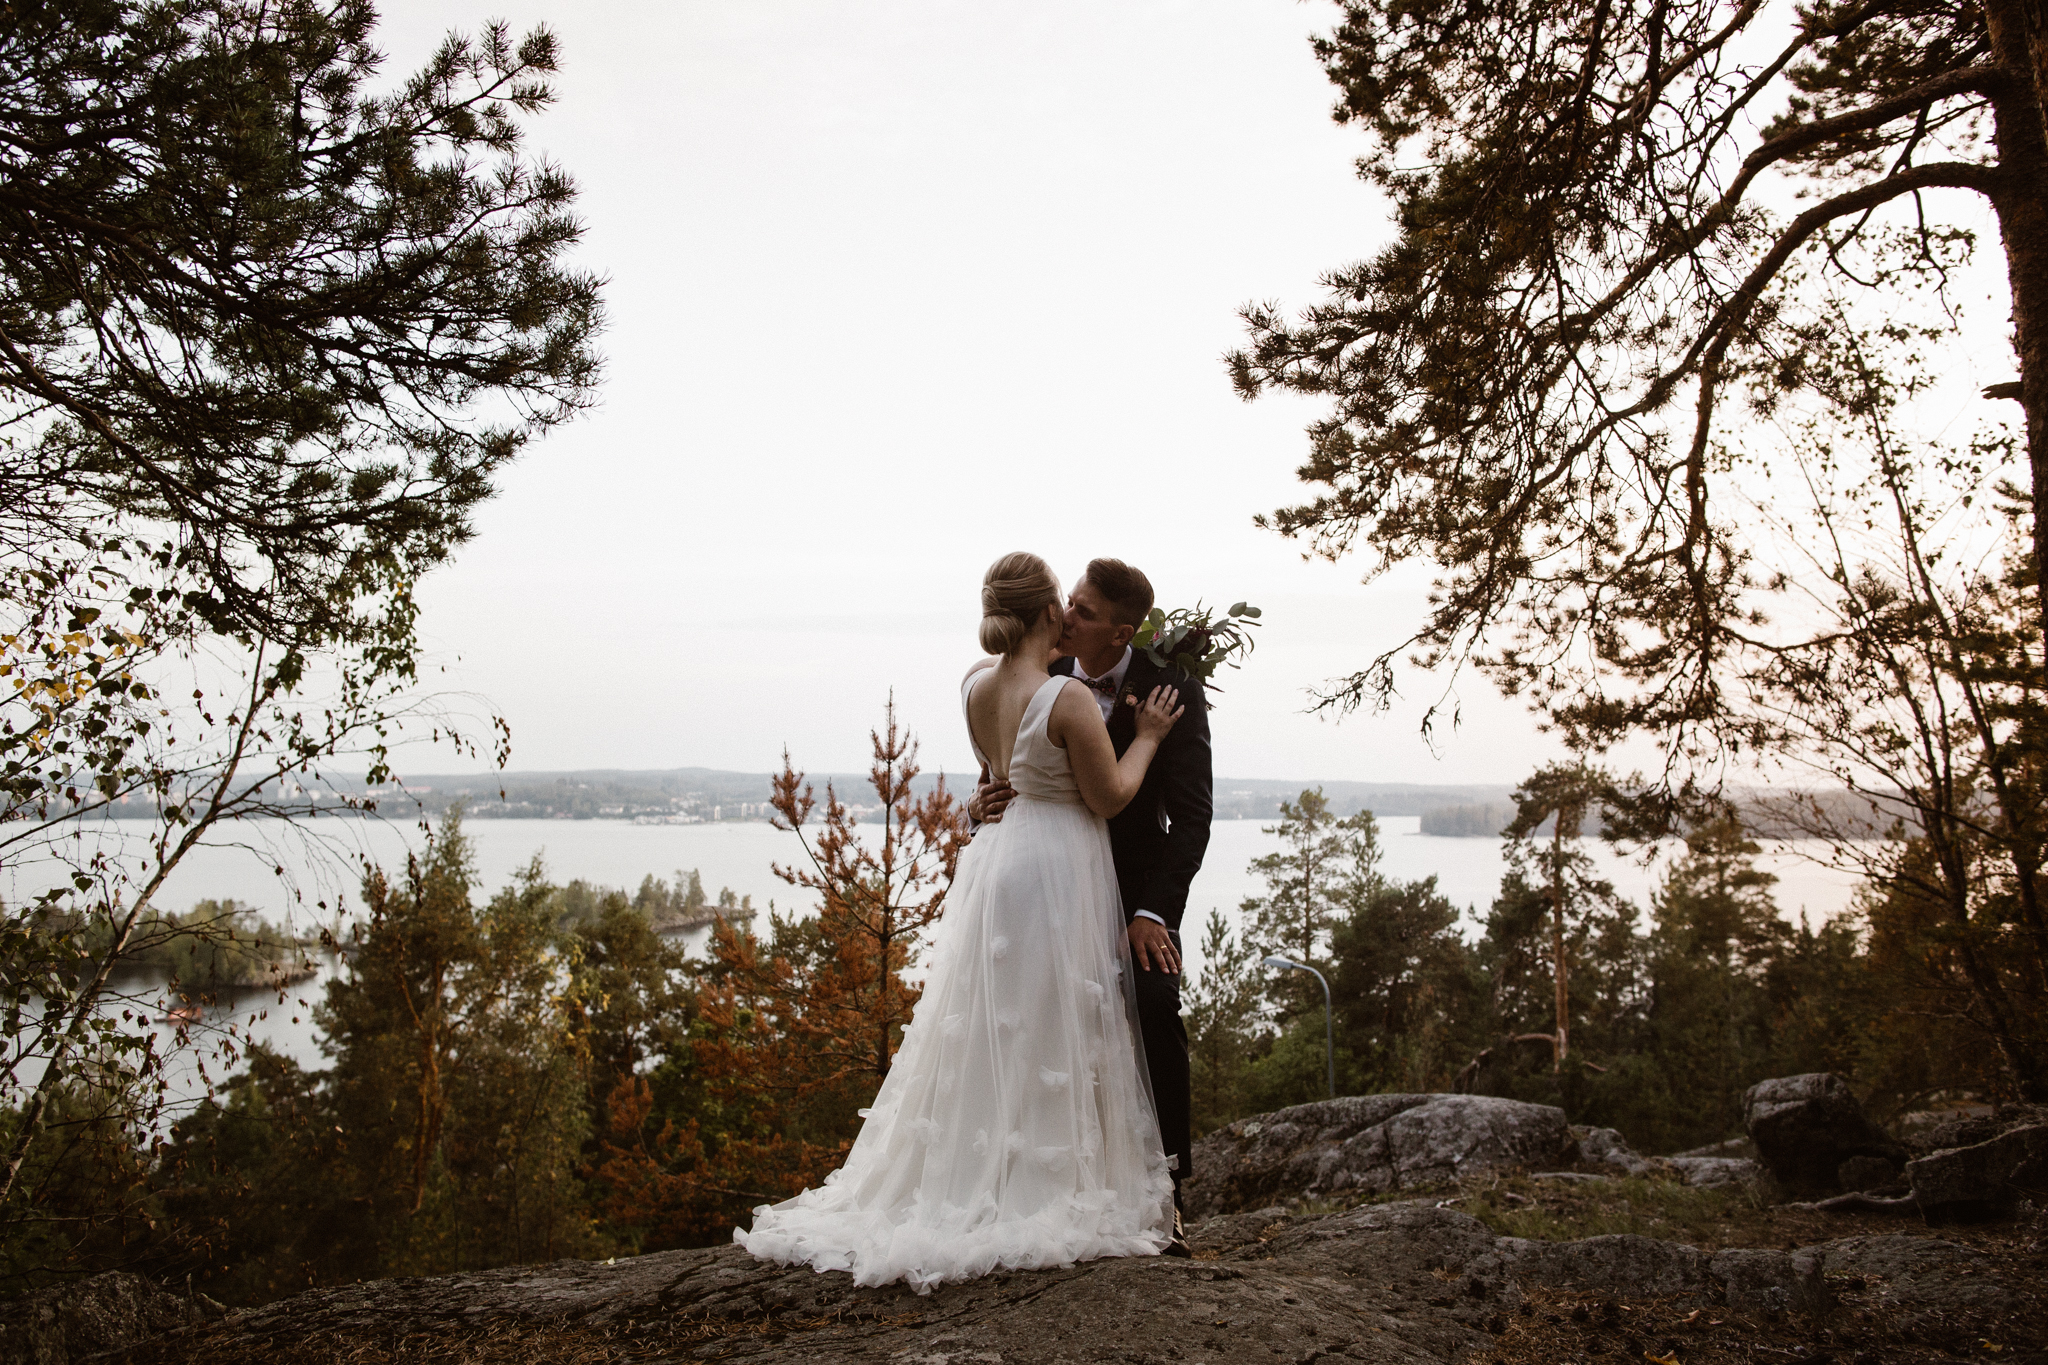 Minna and Jaakko-190.jpg